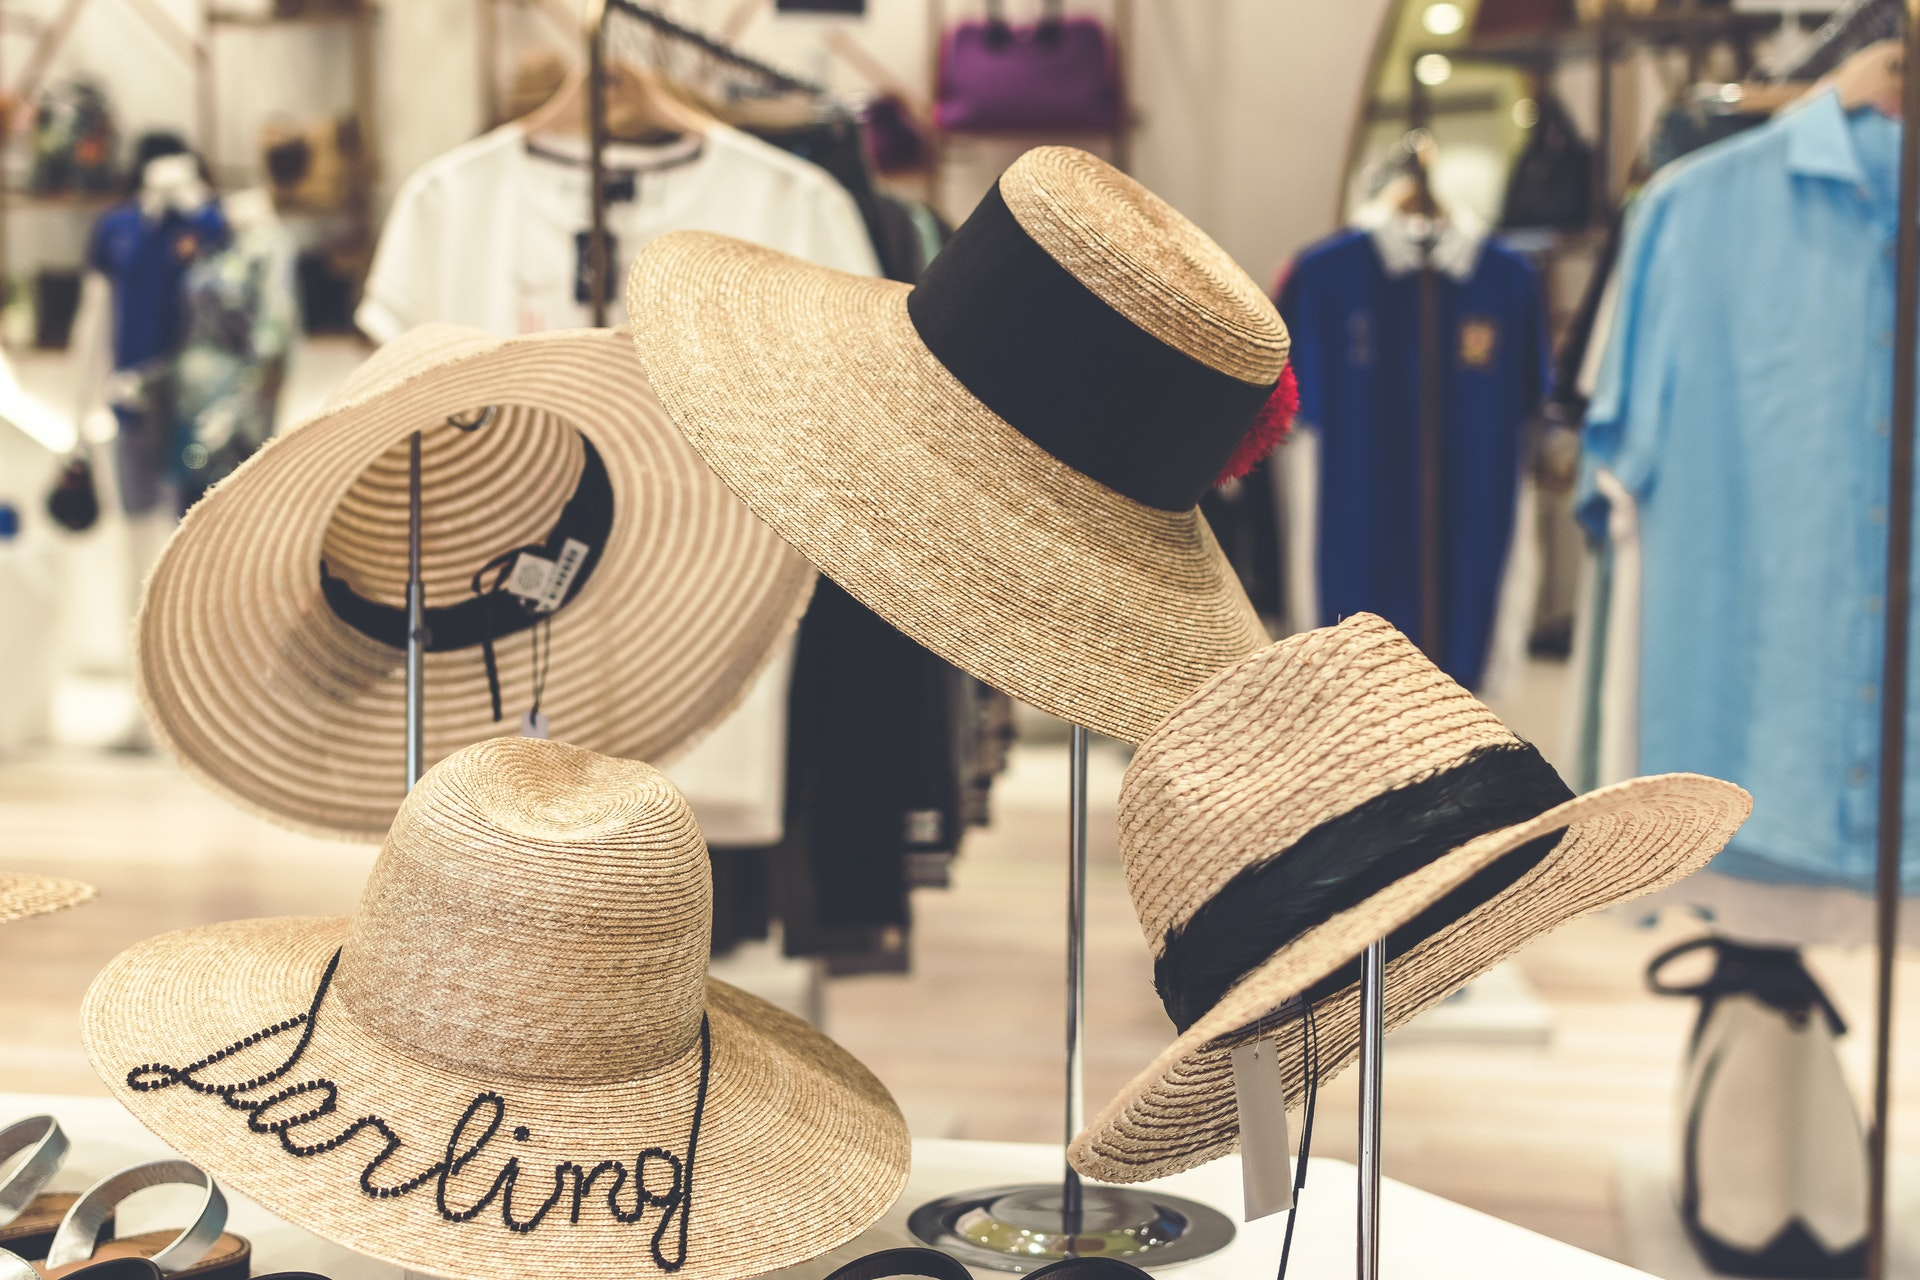 4 hats standing in retail store for apparel clothing hats counterpoint sql